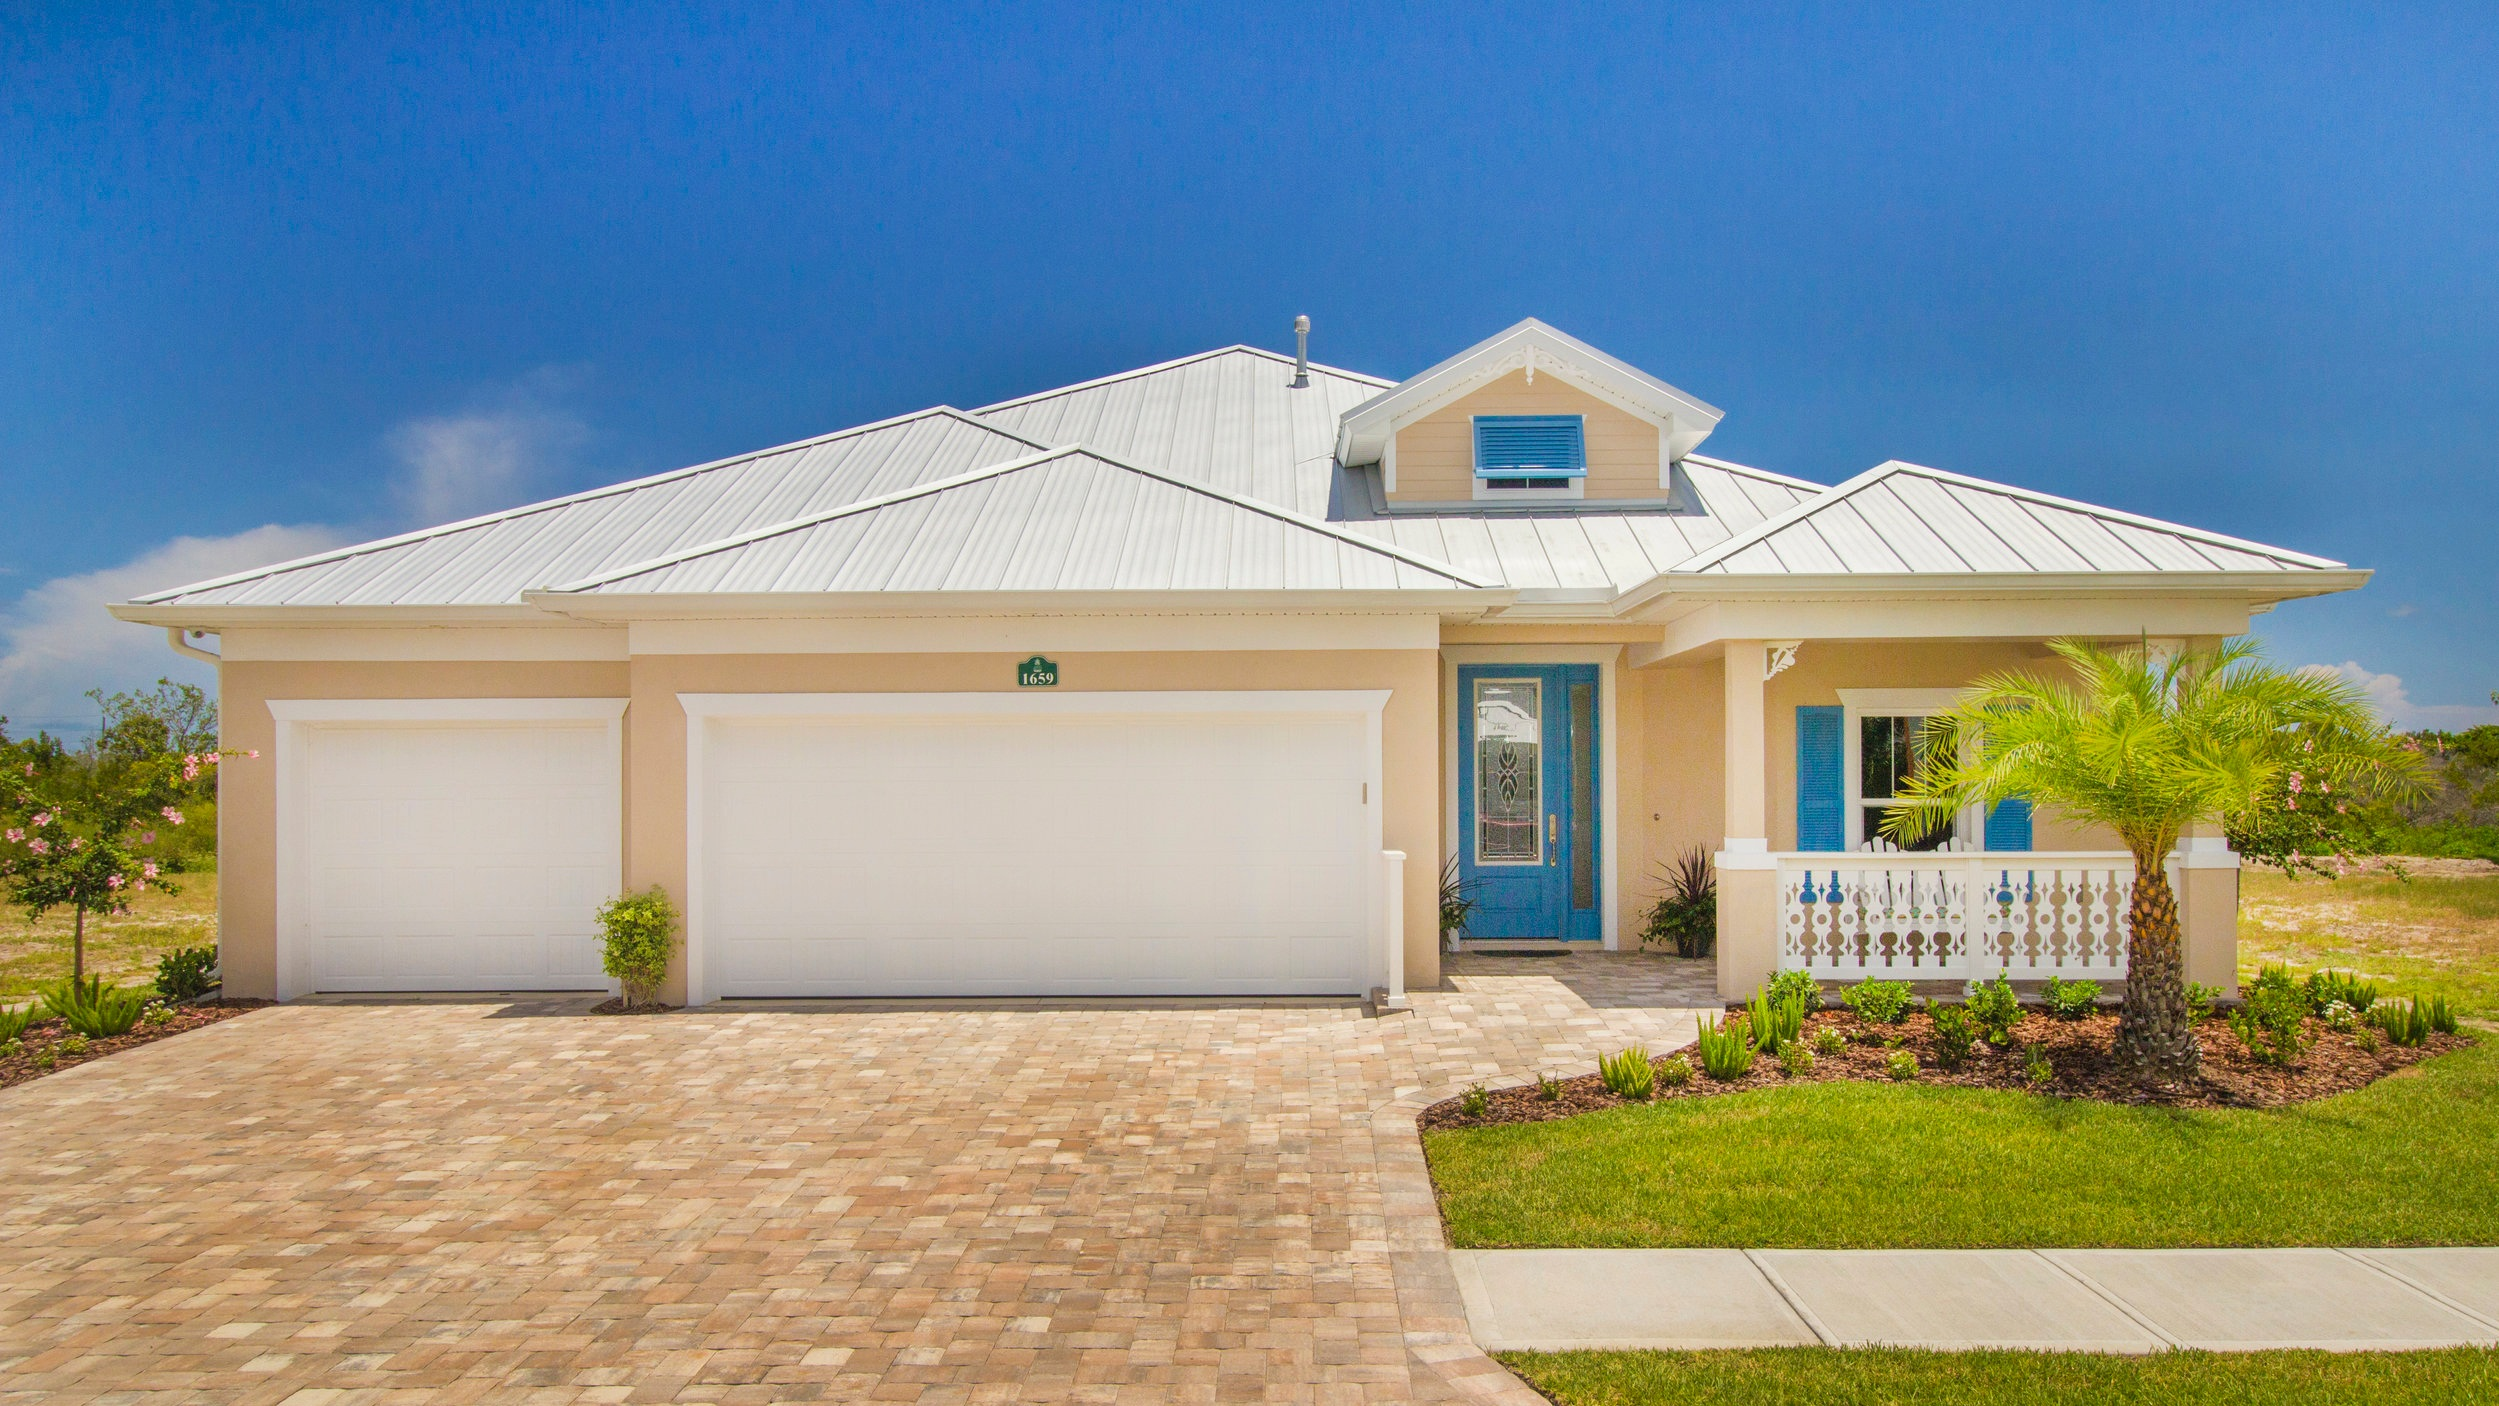 Model Home For Sale! - Move in NOW! 1659 Tullagee Ave, Melbourne, FL 32940 $600,0004 bedroom/3.5 bathroom/3 car garage/pool 2,448 sq ft under air/3,500 sq ft totalClick here to view virtual tour